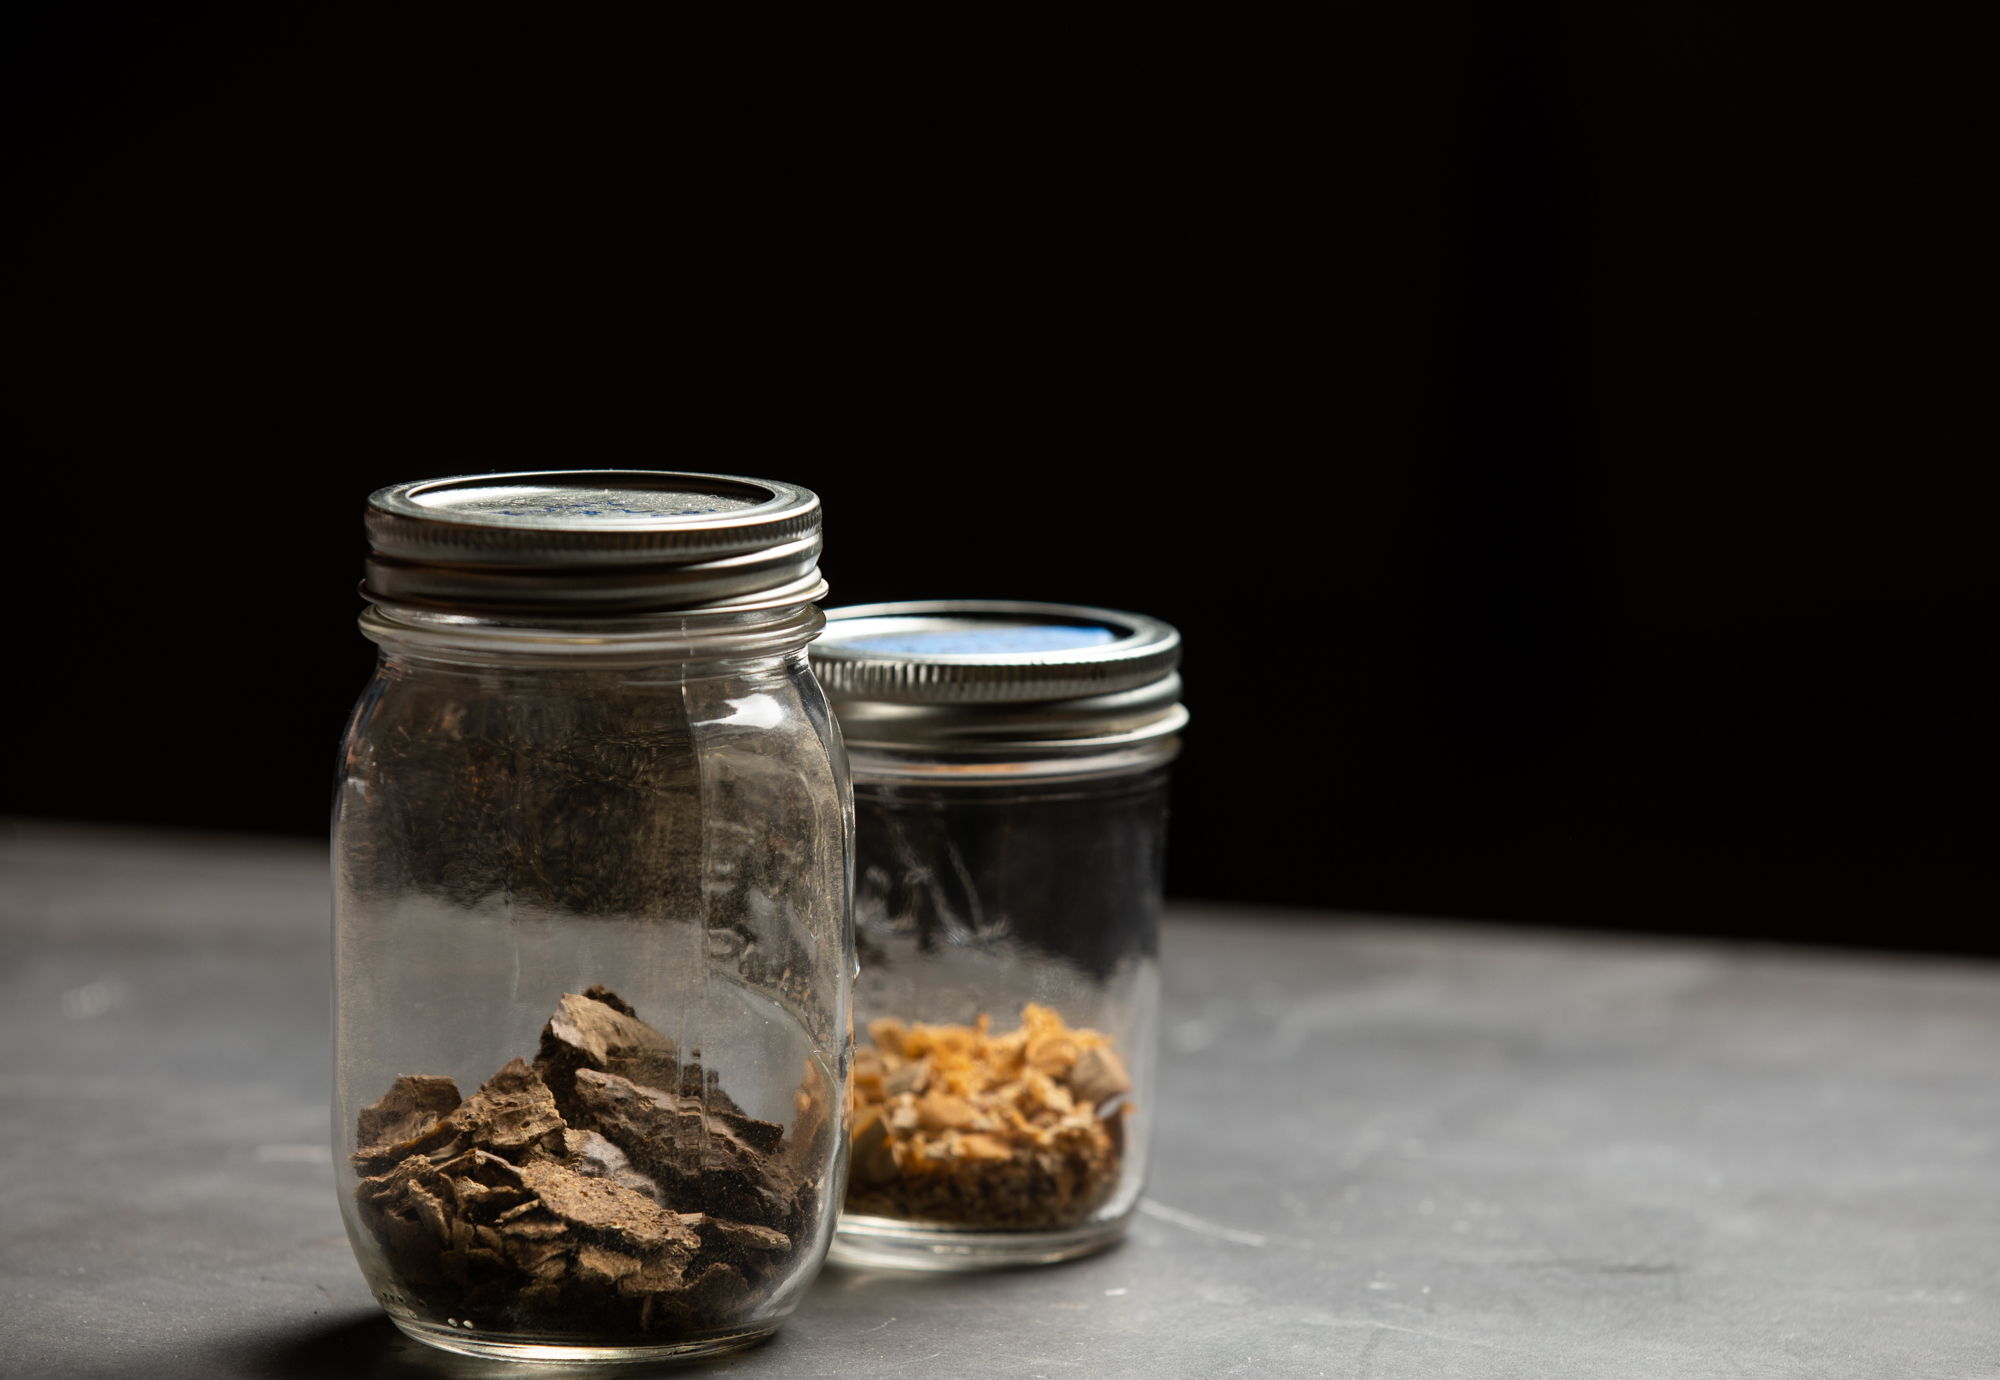 Dried kveik yeast samples collected from Norway // Photo by Tj Turner, yeast courtesy of Chip Walton, Chop & Brew